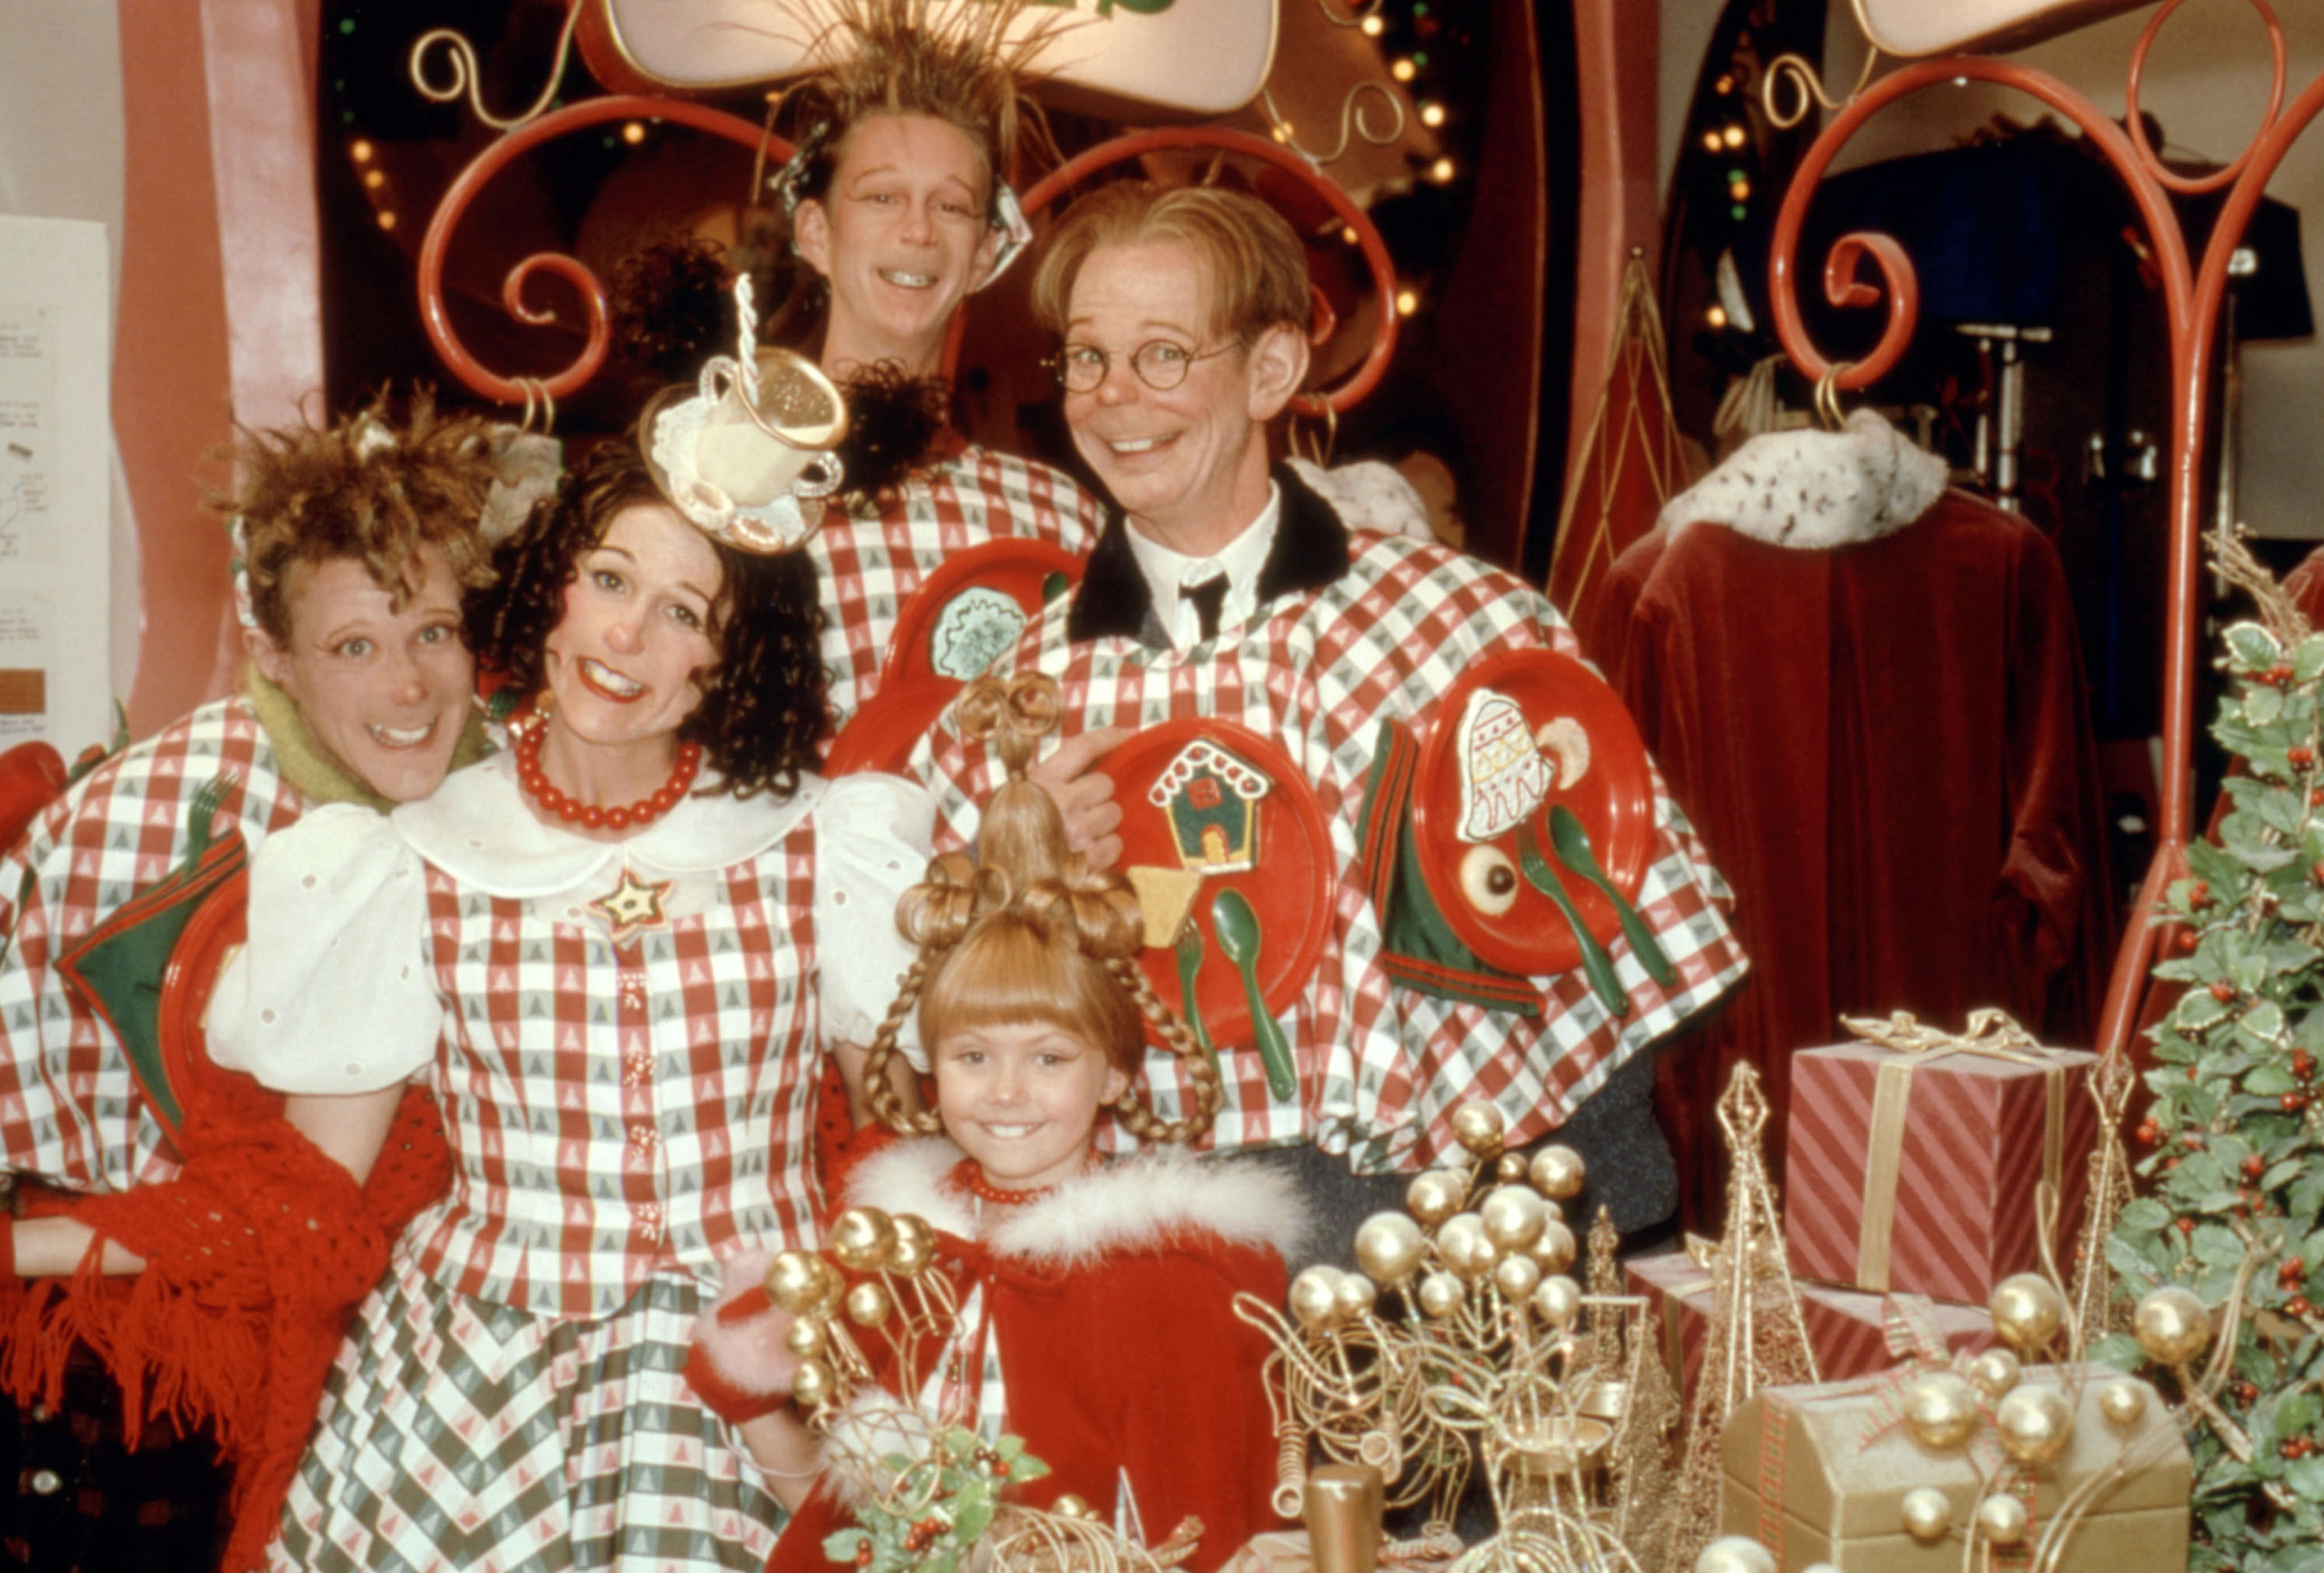 Jeremy Howard, Molly Shannon, TJ Thyne, Taylor Momsen, and Bill Irwin gather together for a Christmas photo